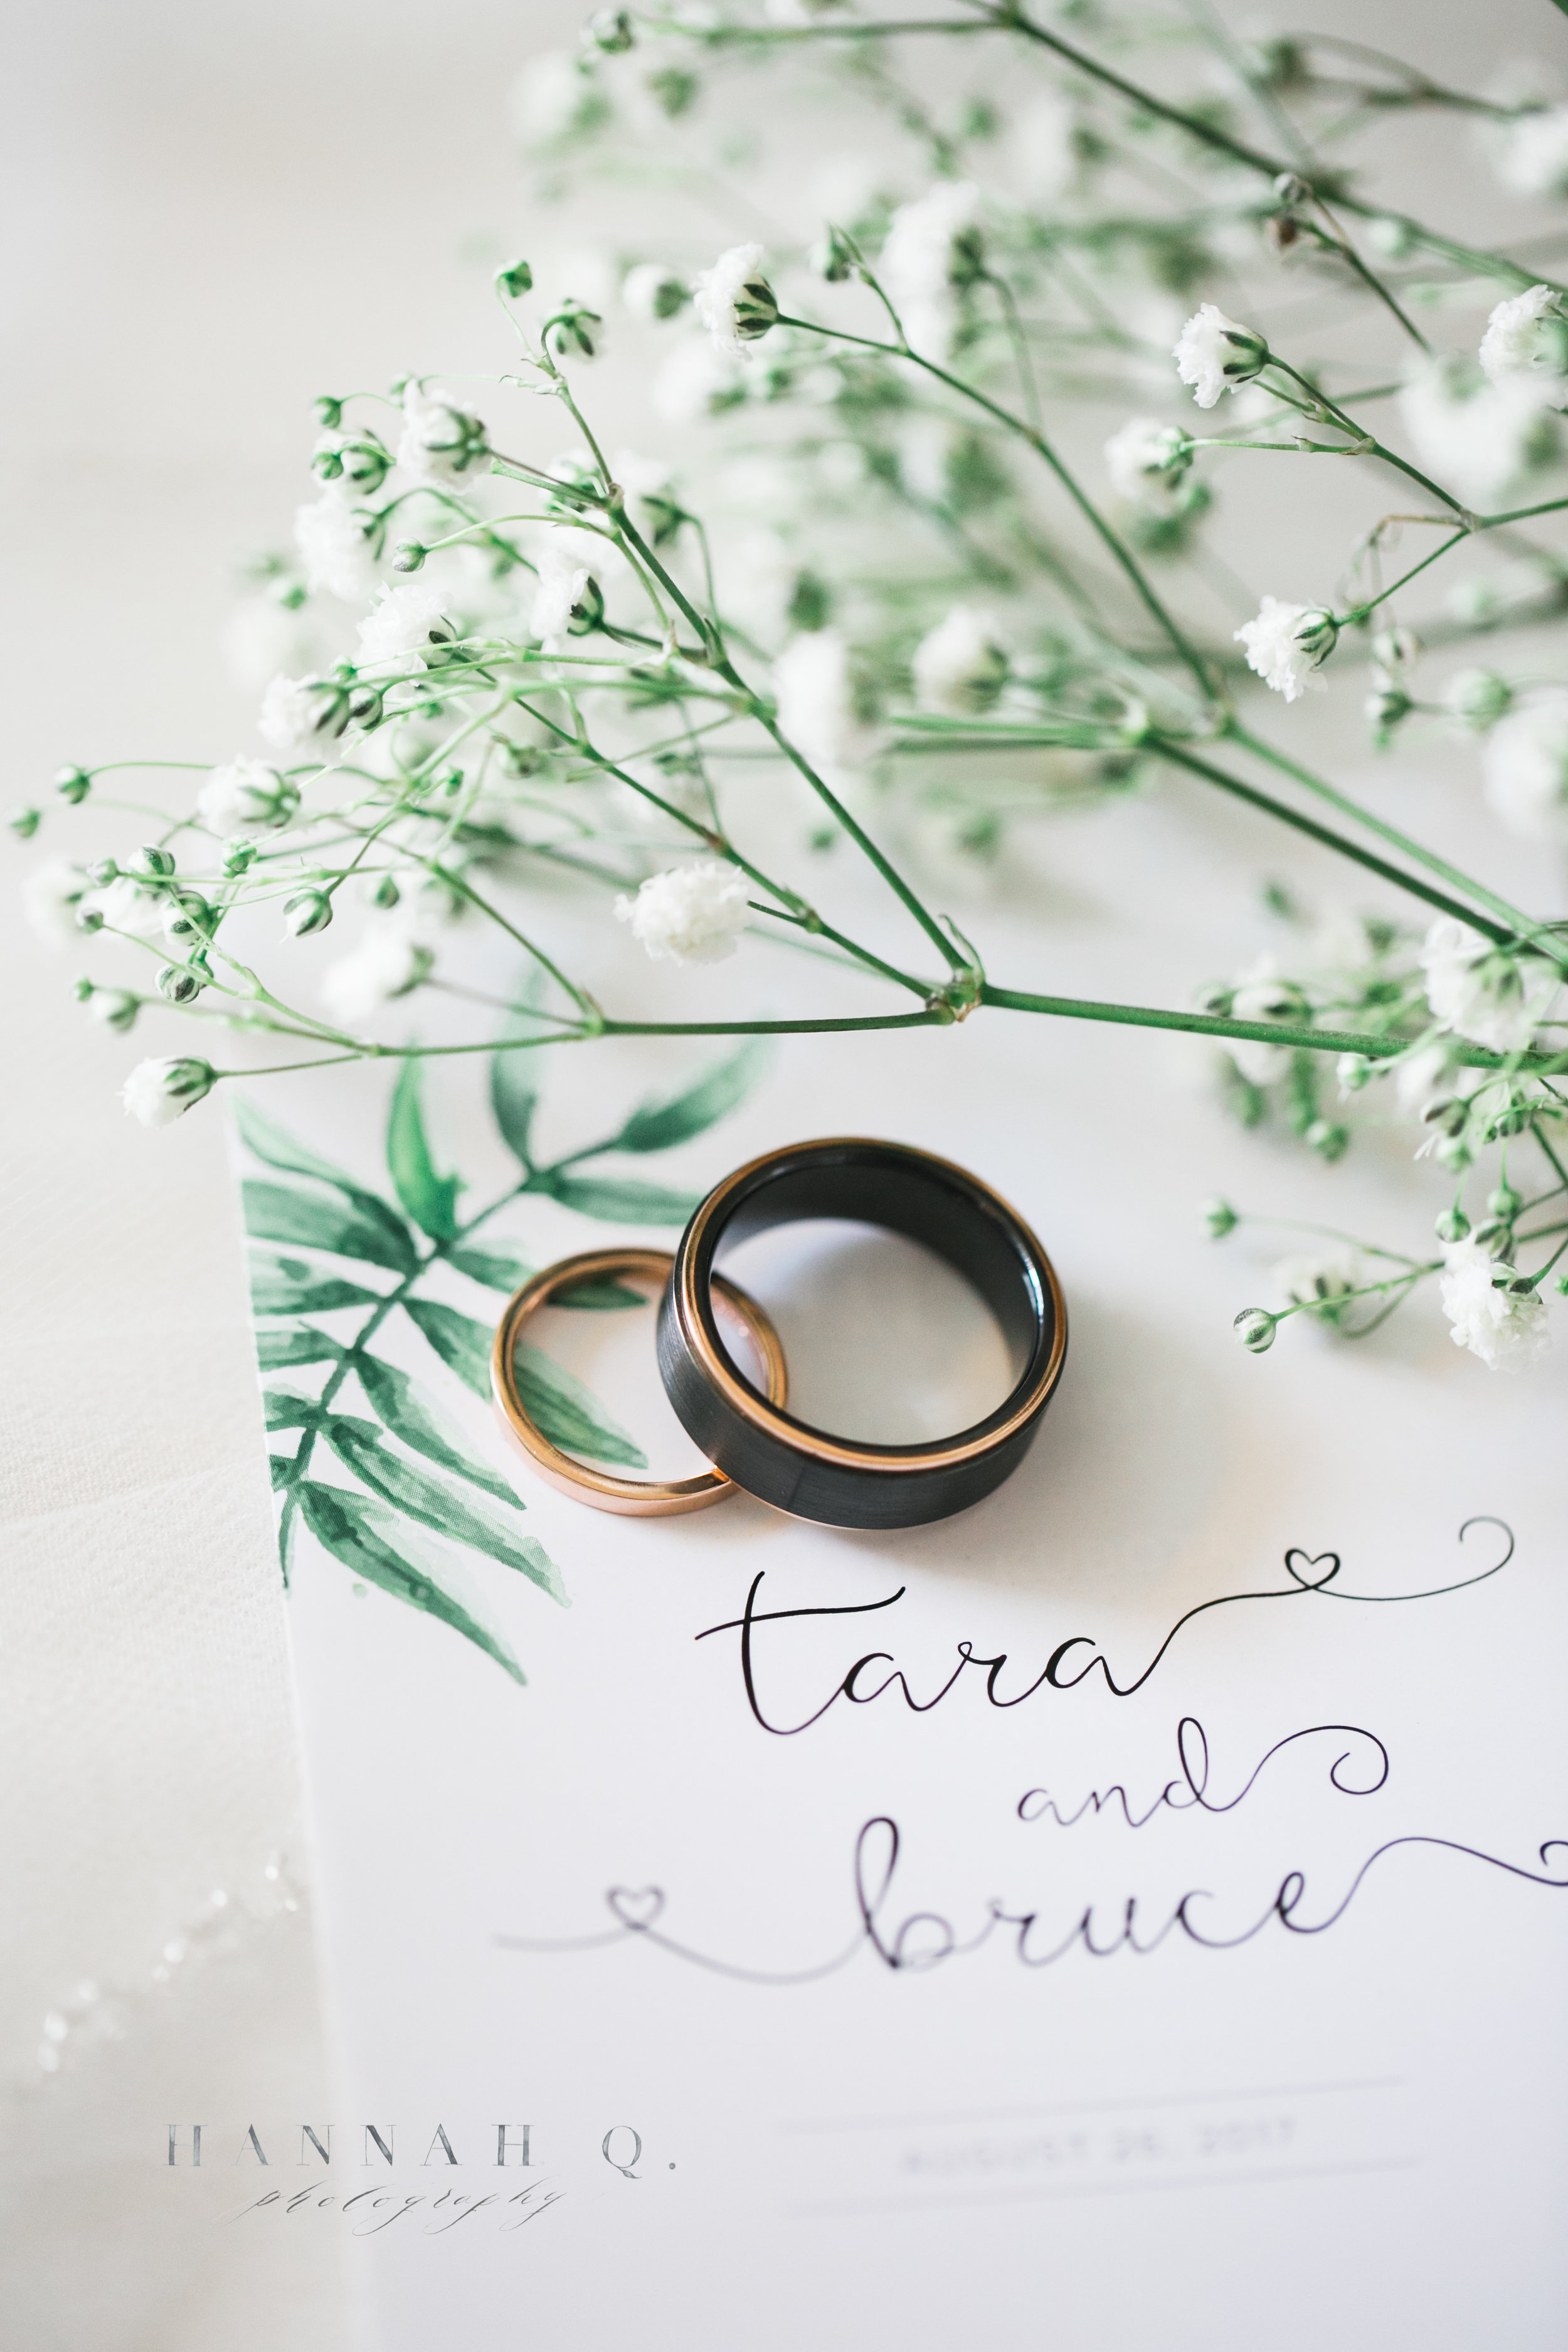 I love our Tara + Bruce added touches of green and foliage to their wedding day.